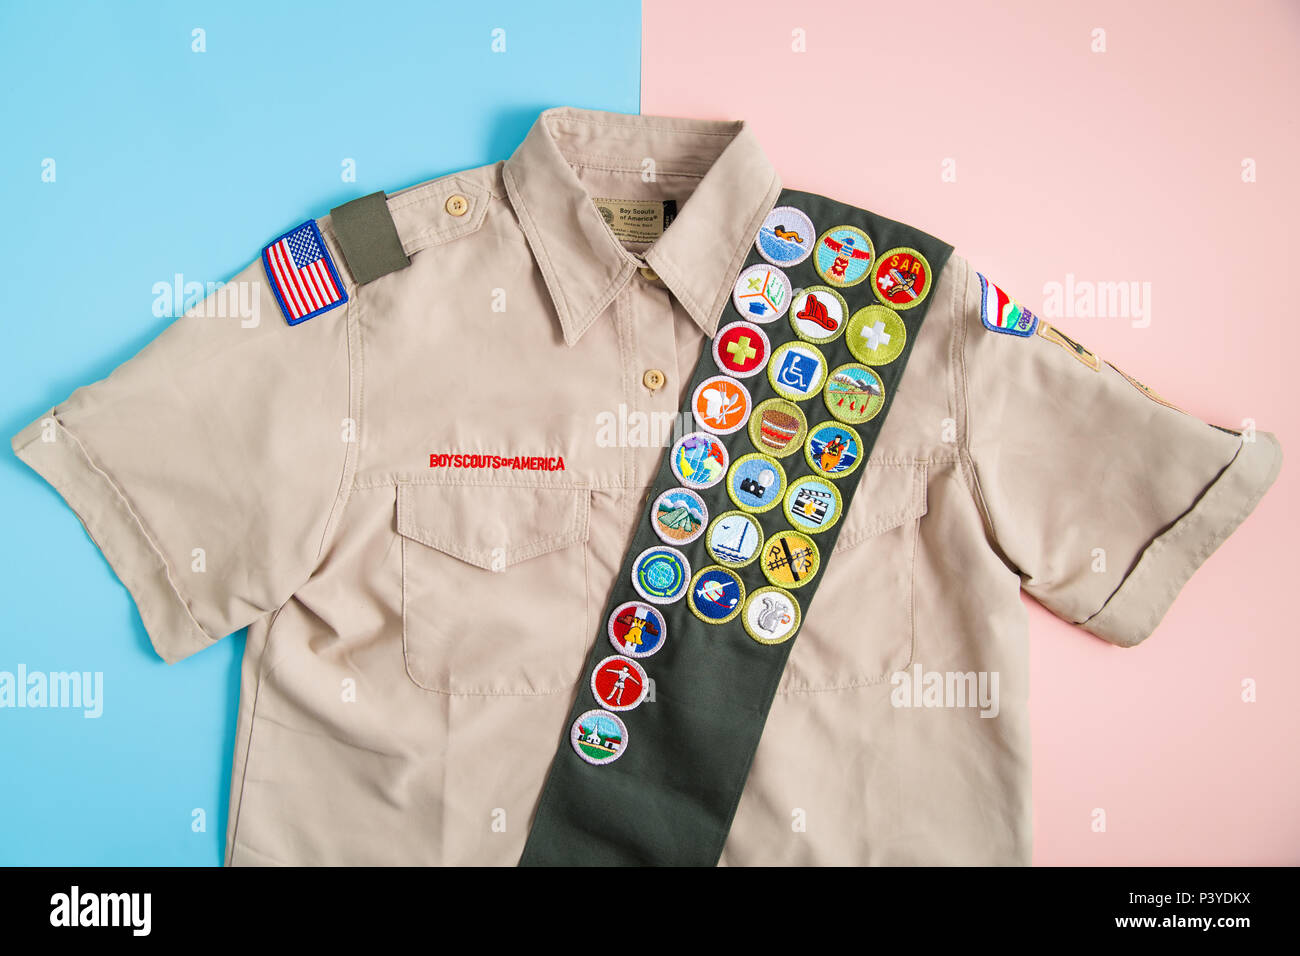 SAINT LOUIS, UNITED STATES - MAY 3, 2018:  Boy Scouts of America (BSA) uniform shirt and merit badge sash on pink and blue background as BSA welcomes  - Stock Image